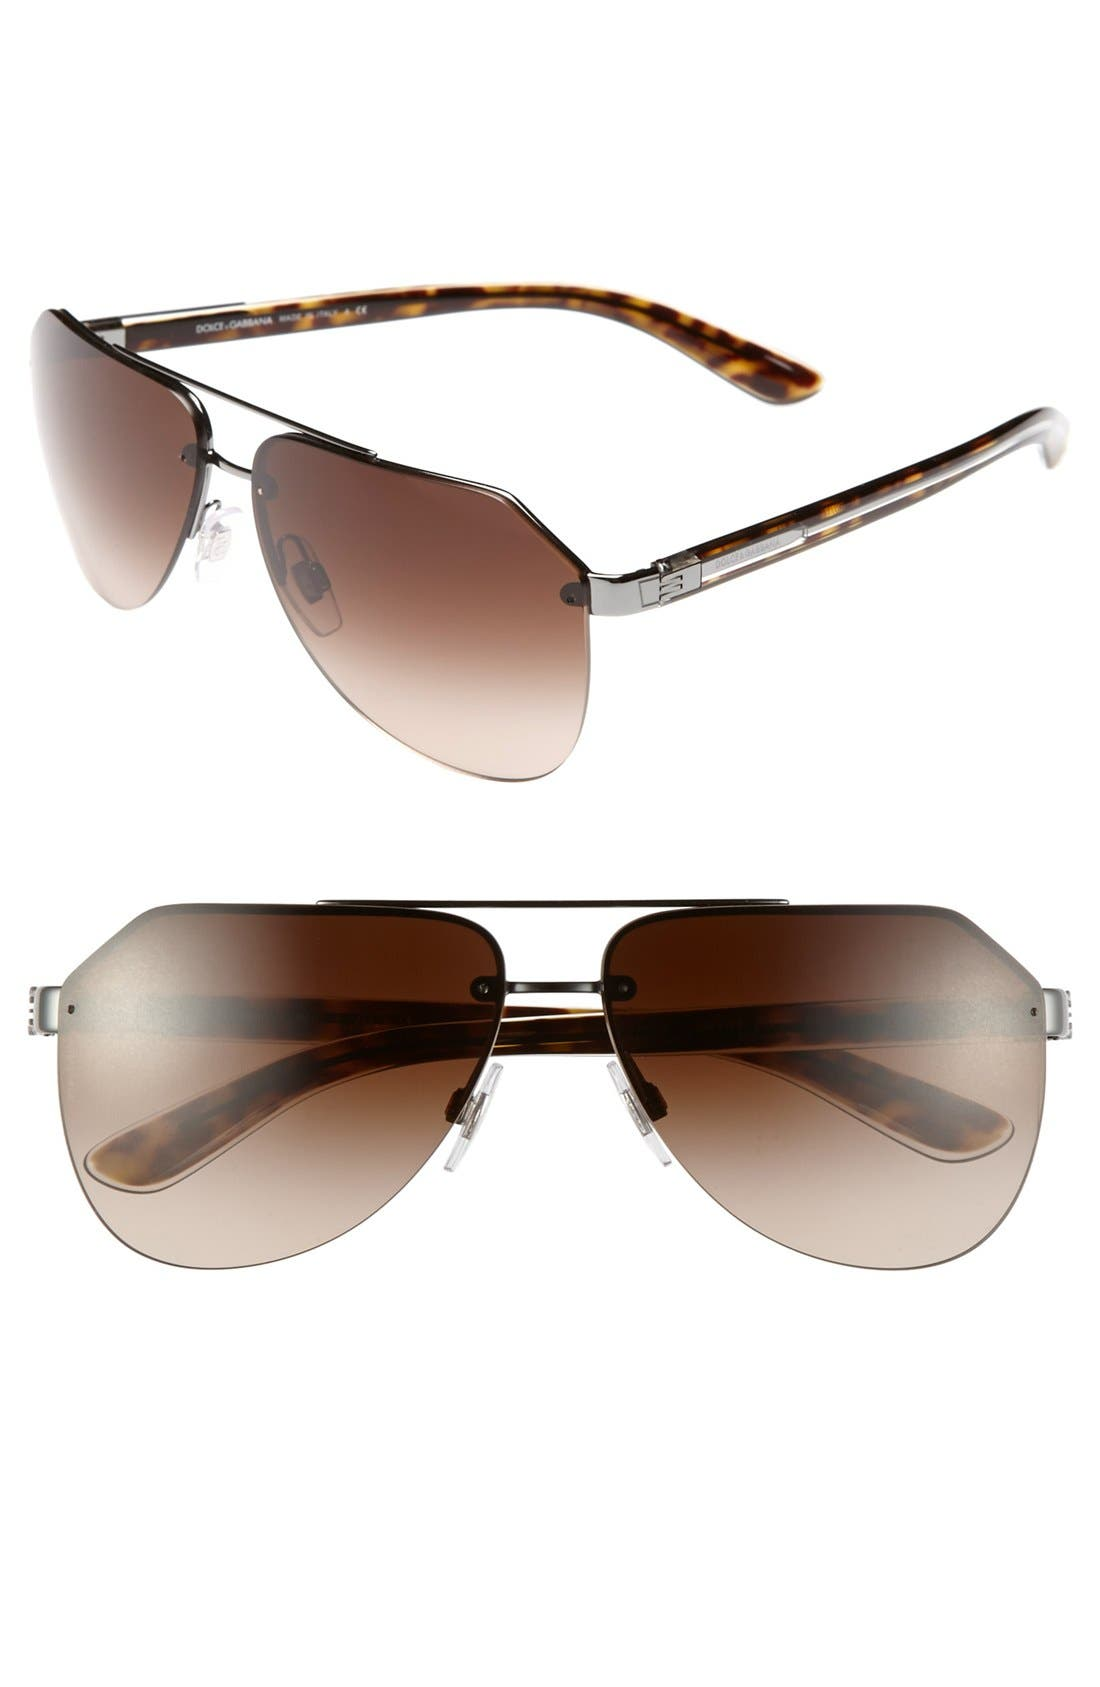 Alternate Image 1 Selected - Dolce&Gabbana 61mm Polarized Rimless Aviator Sunglasses